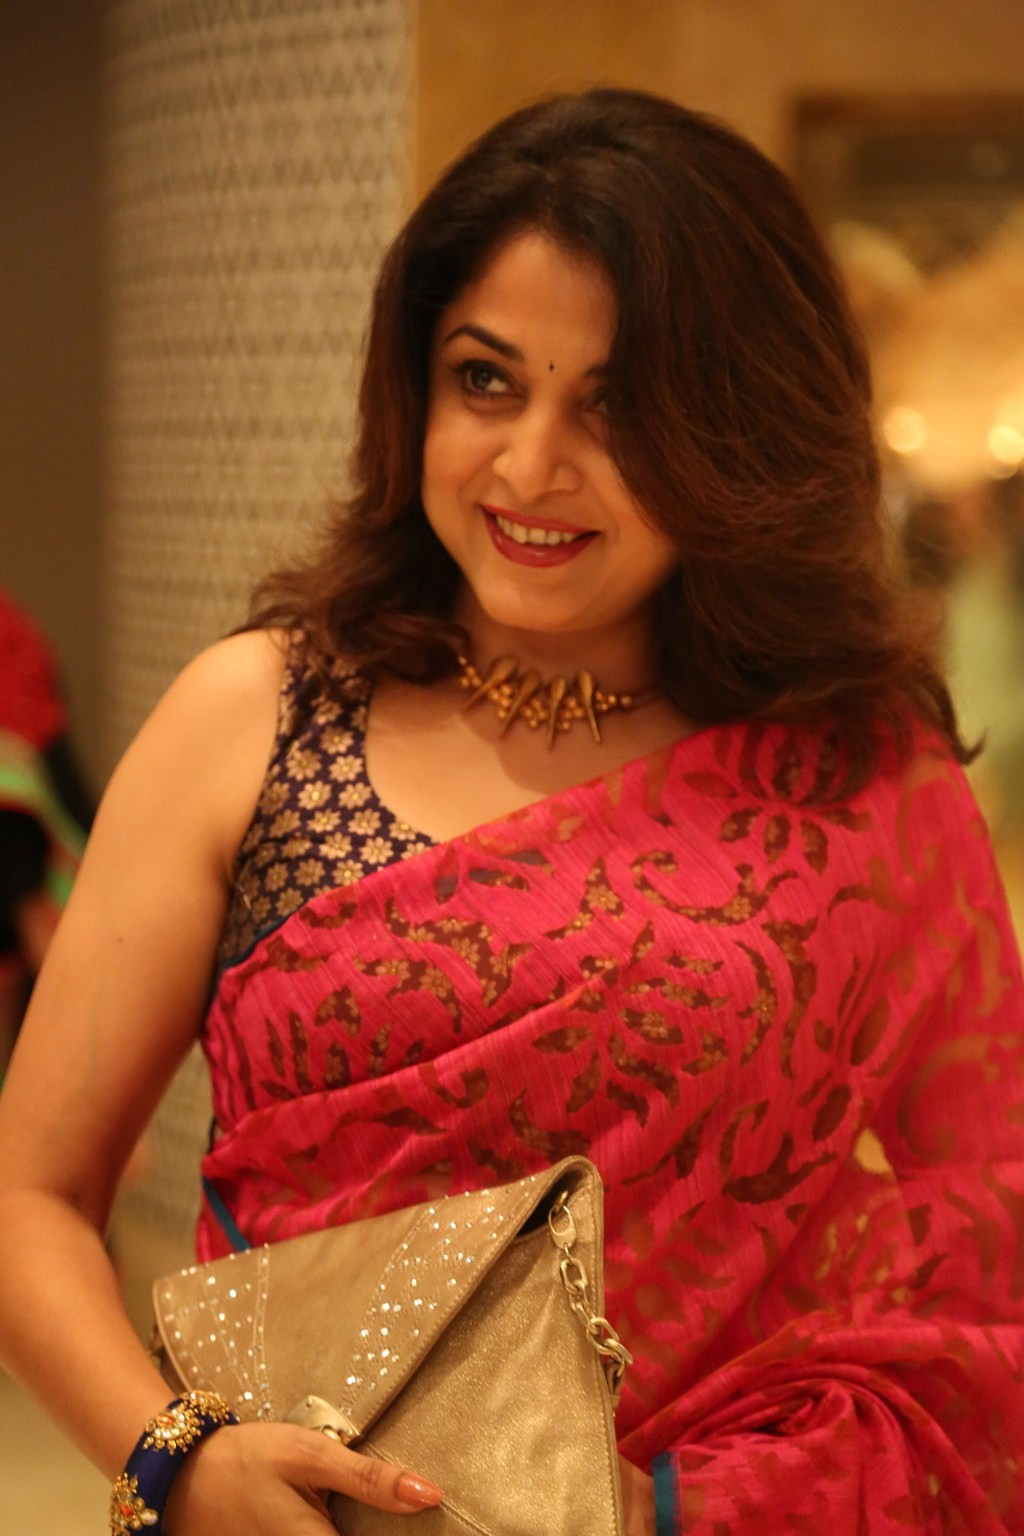 Opinion Ramyakrishnan-nude apologise, but